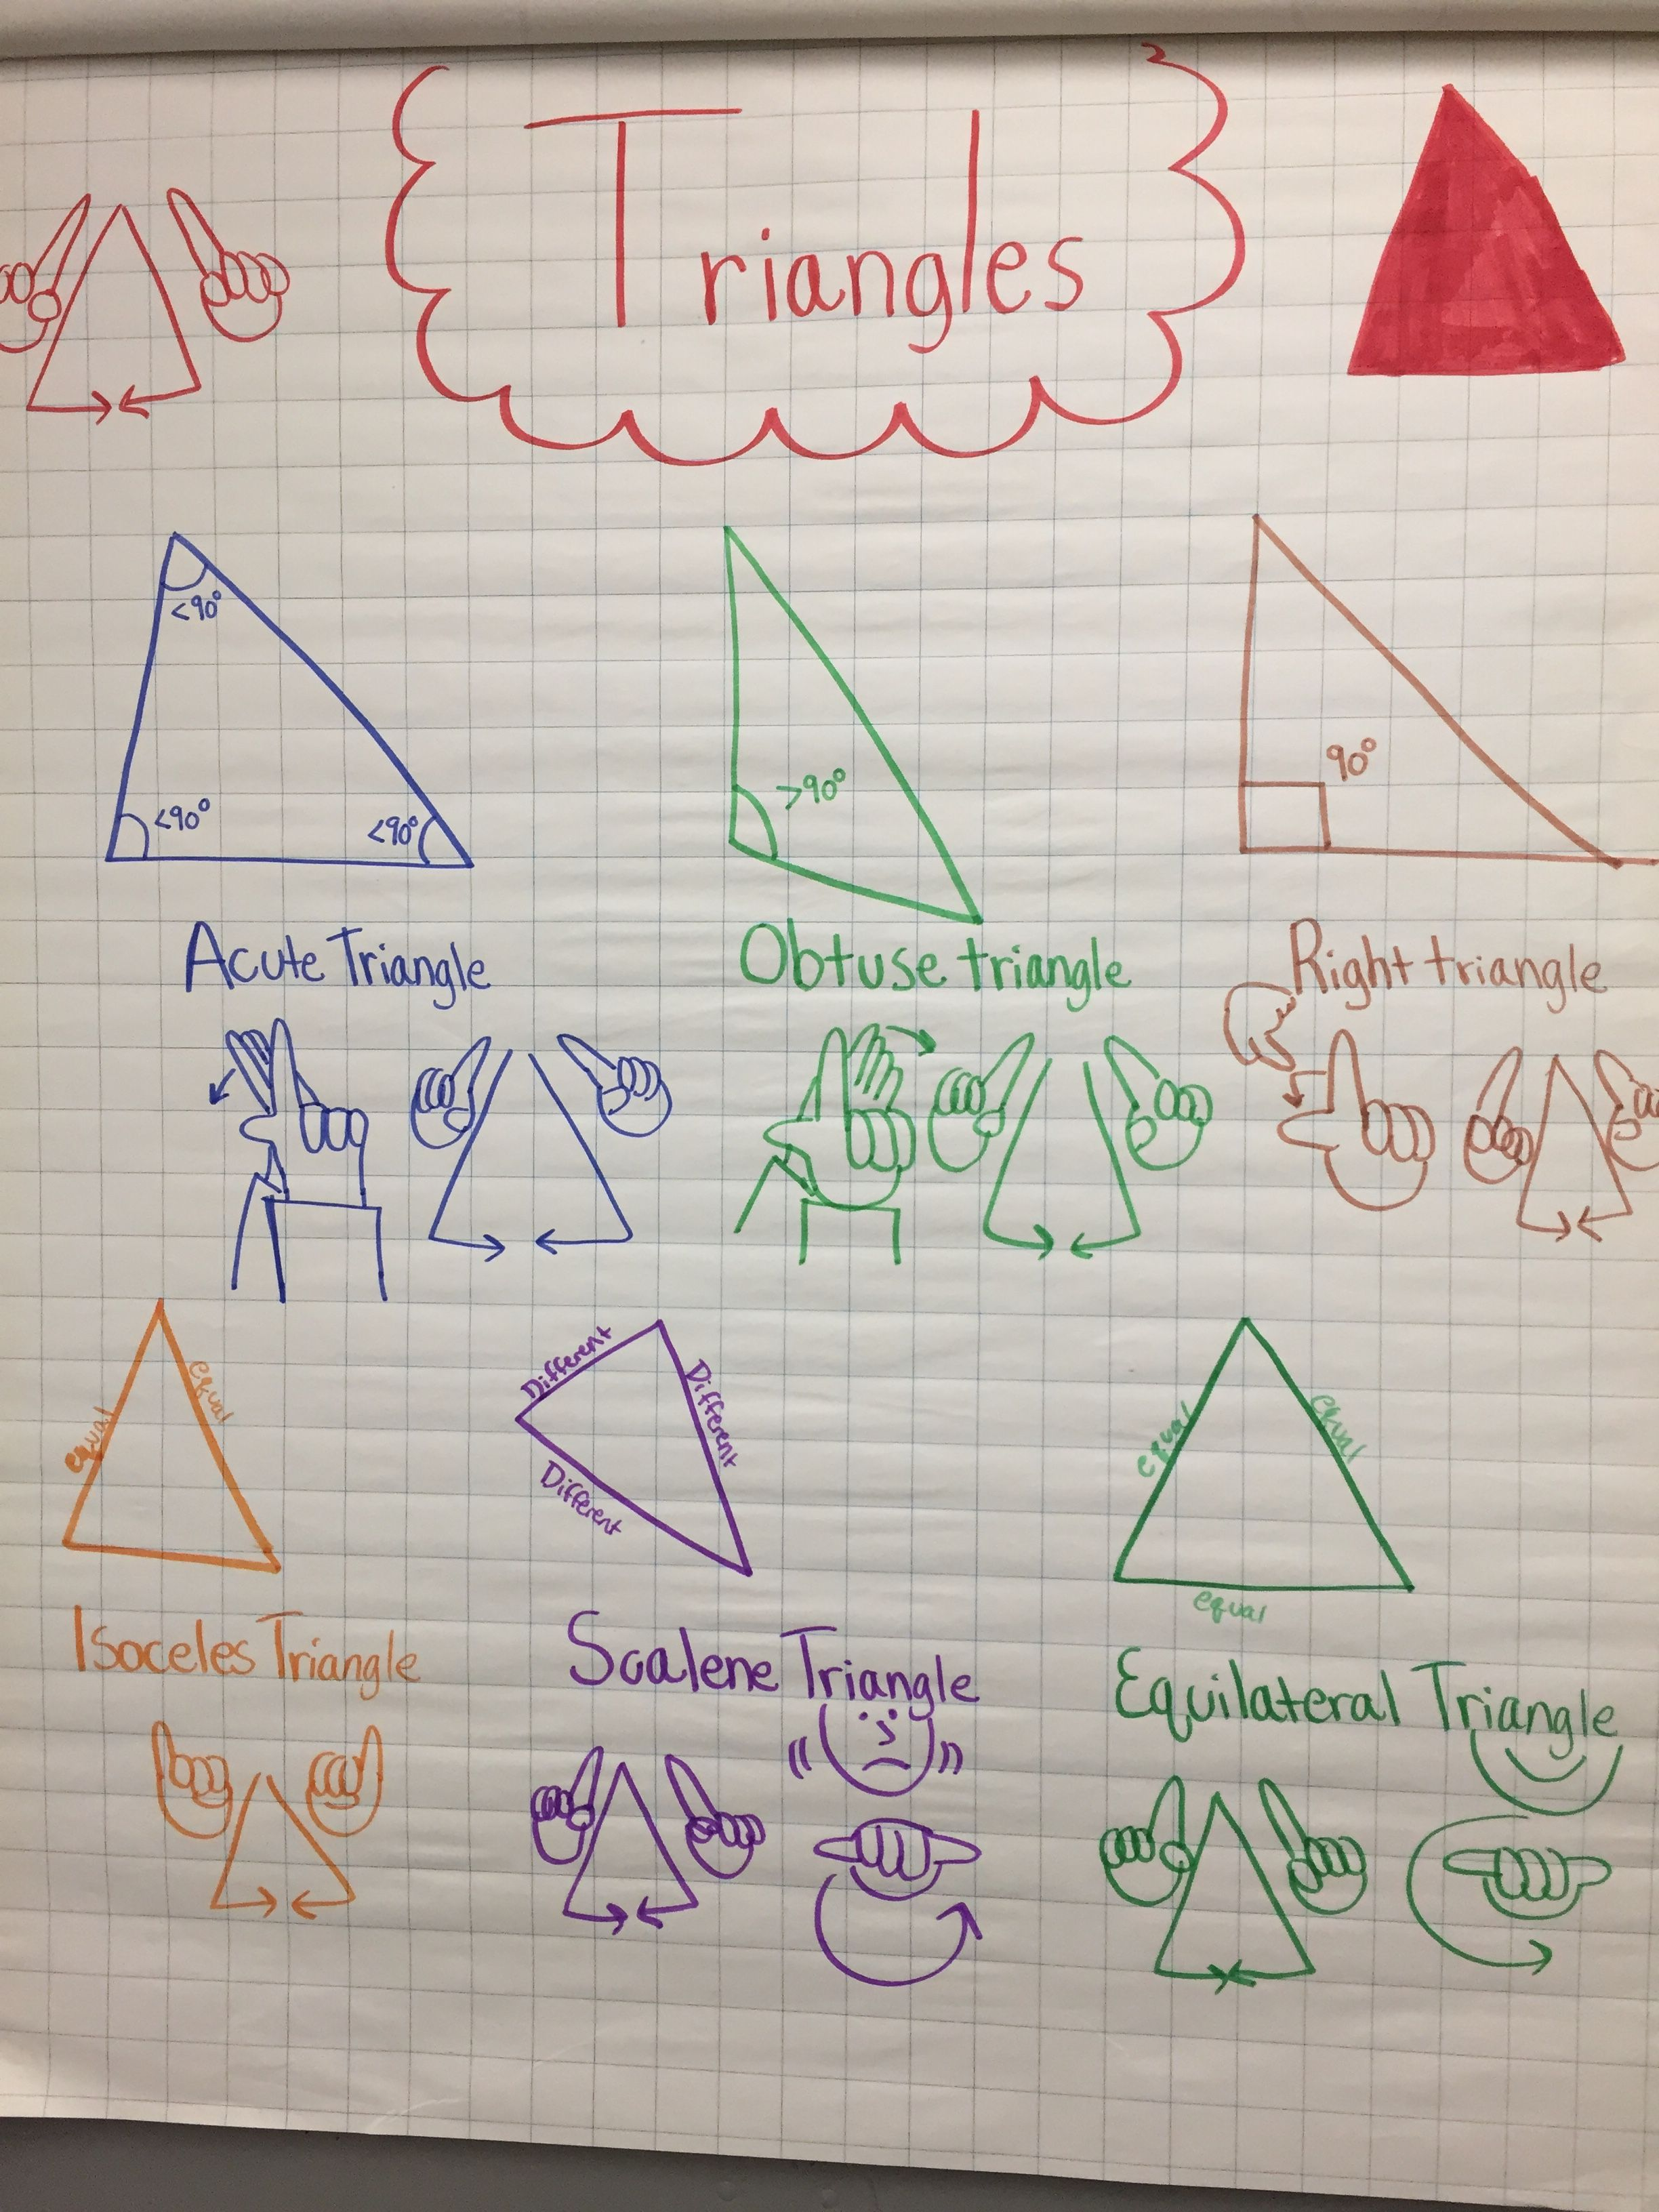 Types of fourth grade geometry triangles in sign language